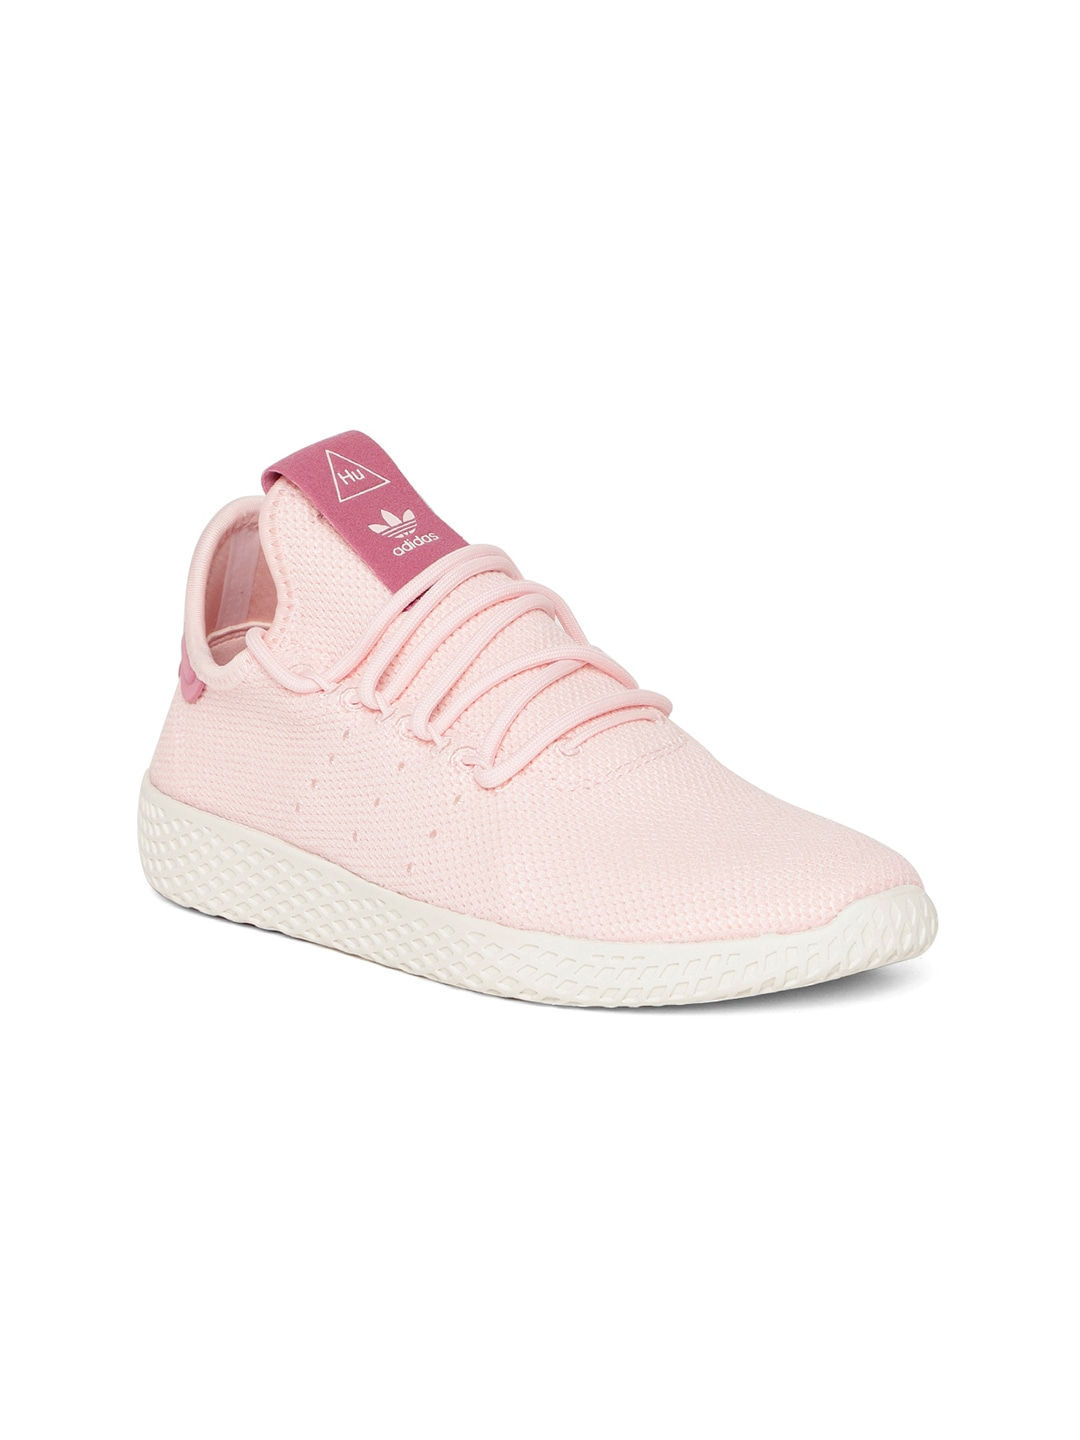 2aef07136 Adidas Sneakers Shoes - Buy Adidas Sneakers Shoes online in India